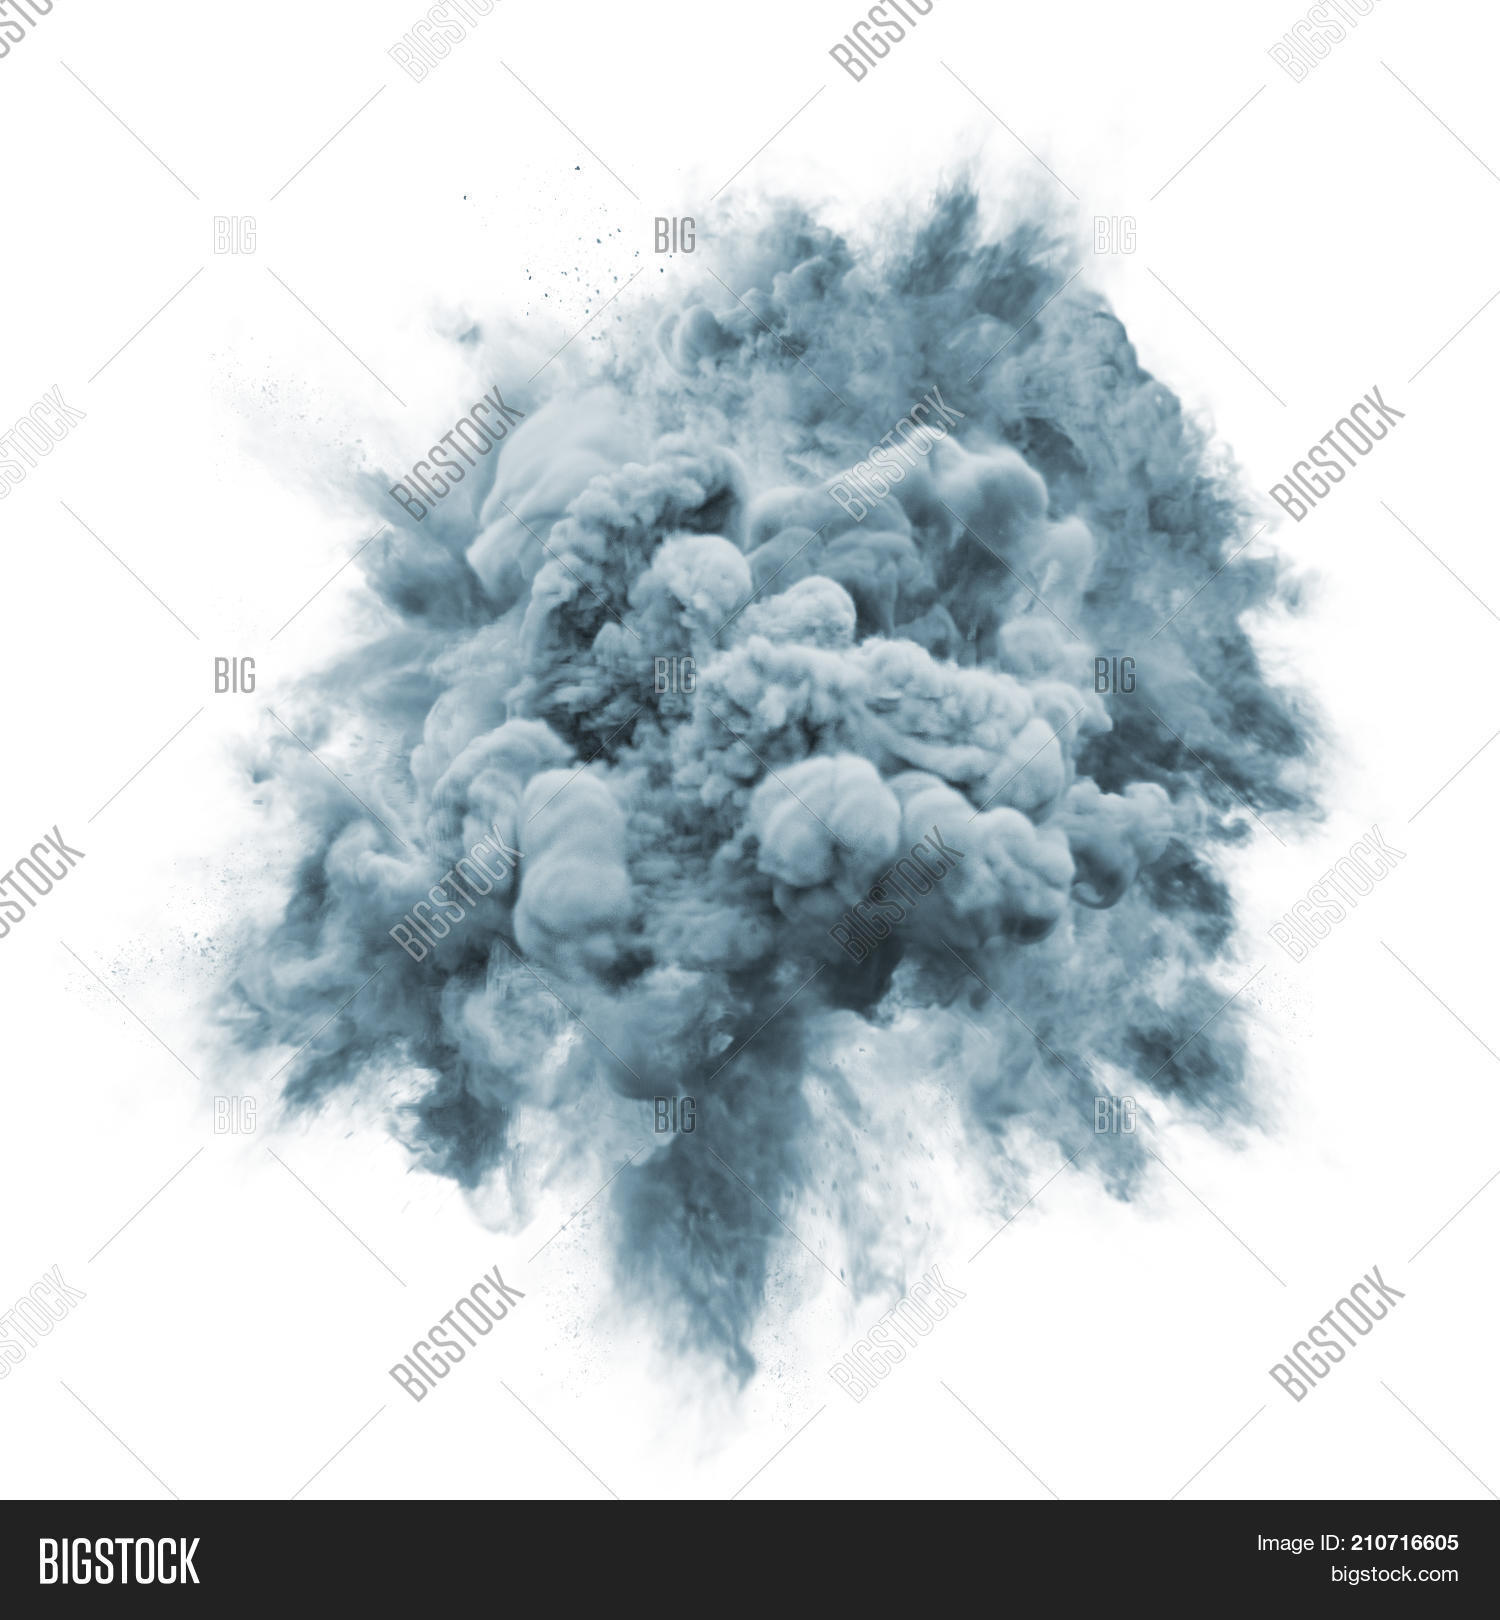 Paint Powder Explosion Image & Photo (Free Trial) | Bigstock